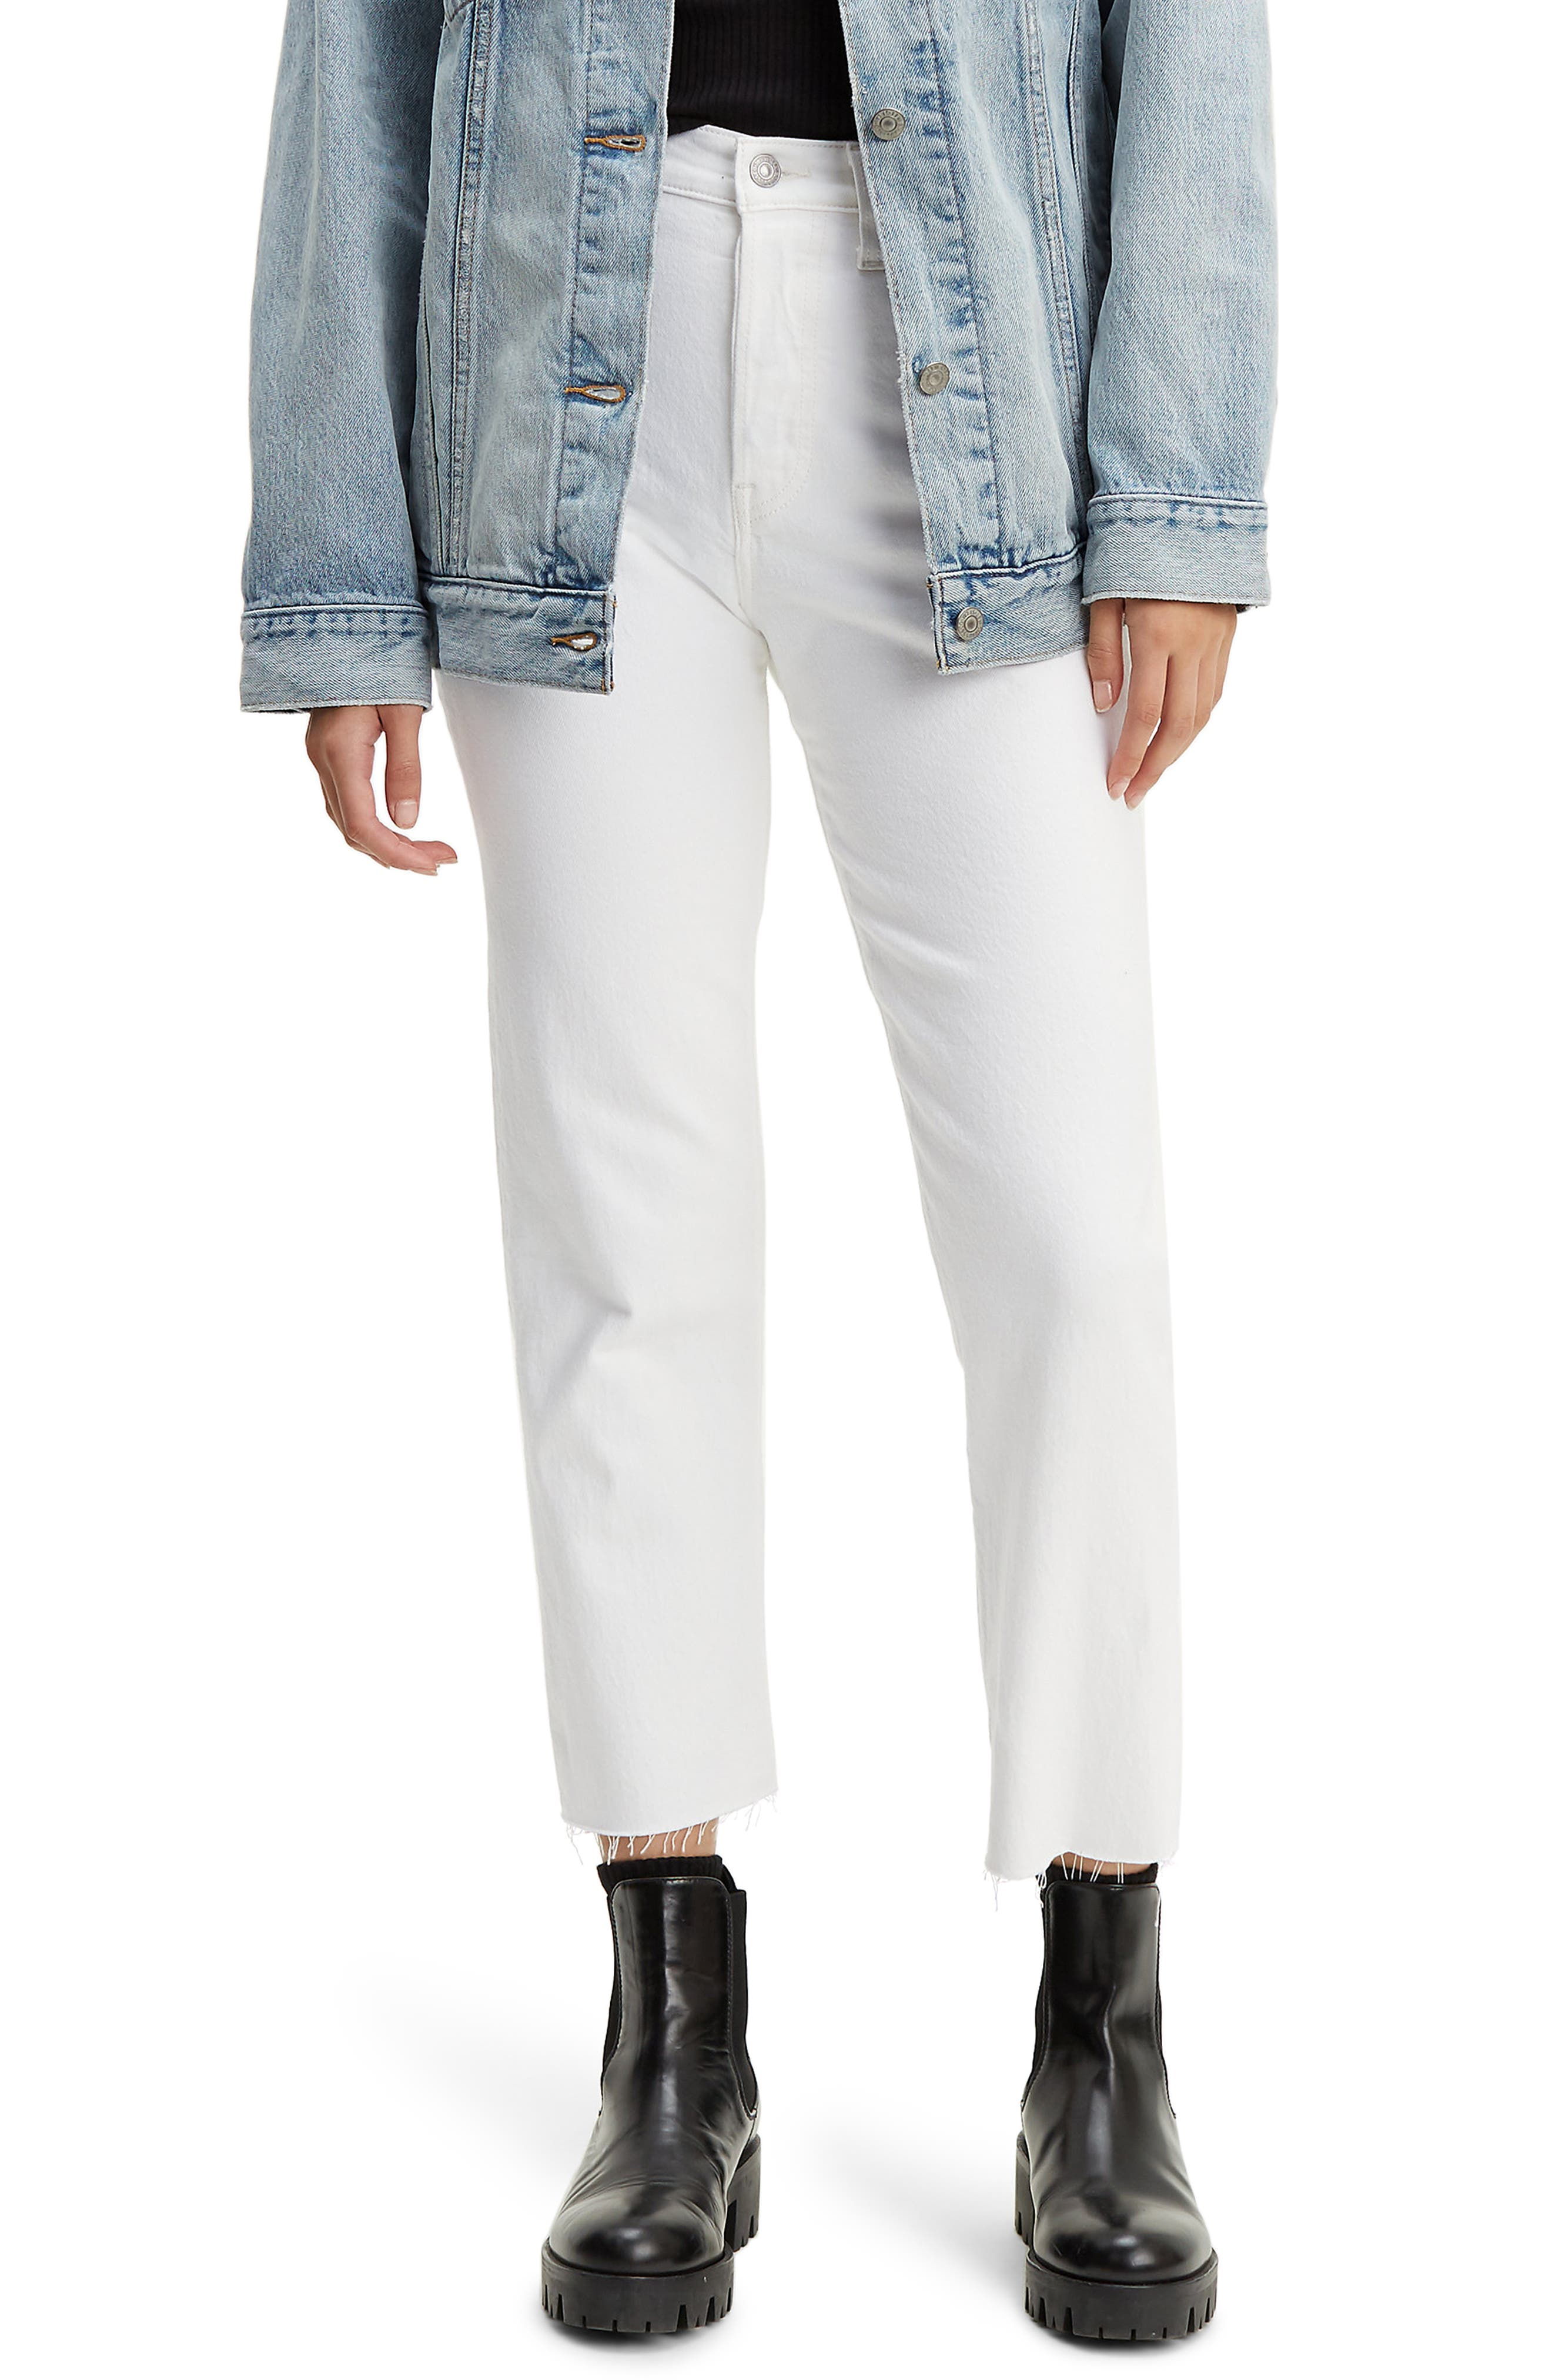 Levi's® Wedgie High Waist Frayed Crop Straight Leg Jeans (In the Clouds)